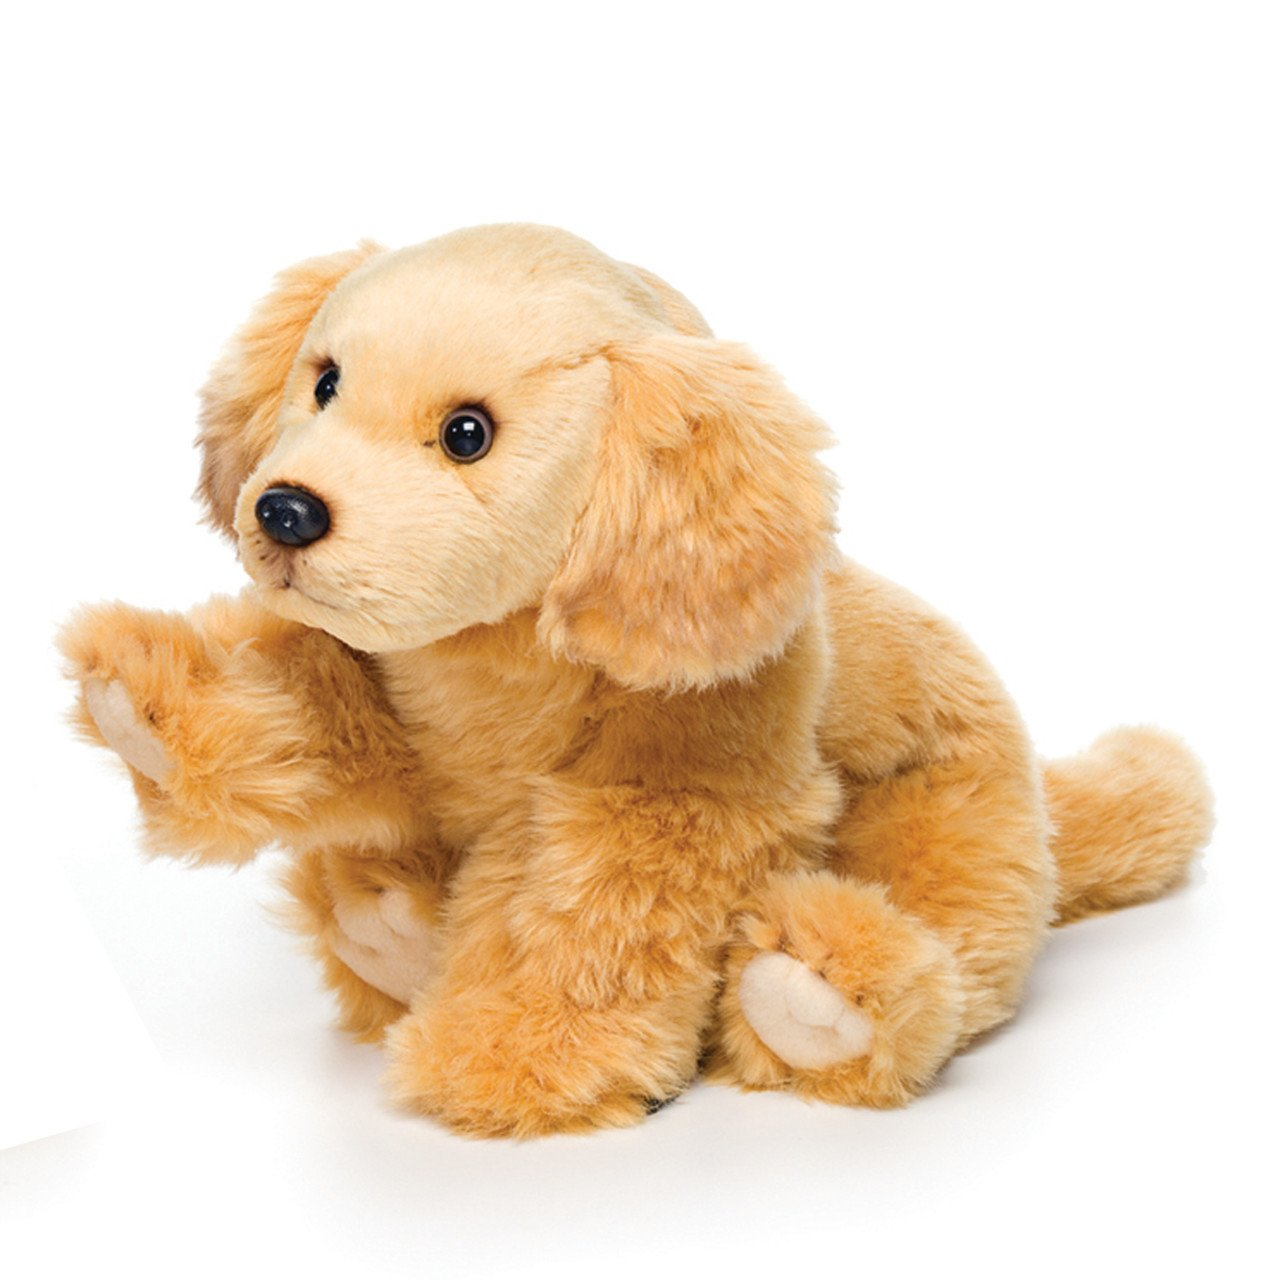 Nat and Jules Cuddly Small Golden Retriever Dog Carmel Brown Children's  Plush Stuffed Animal Toy